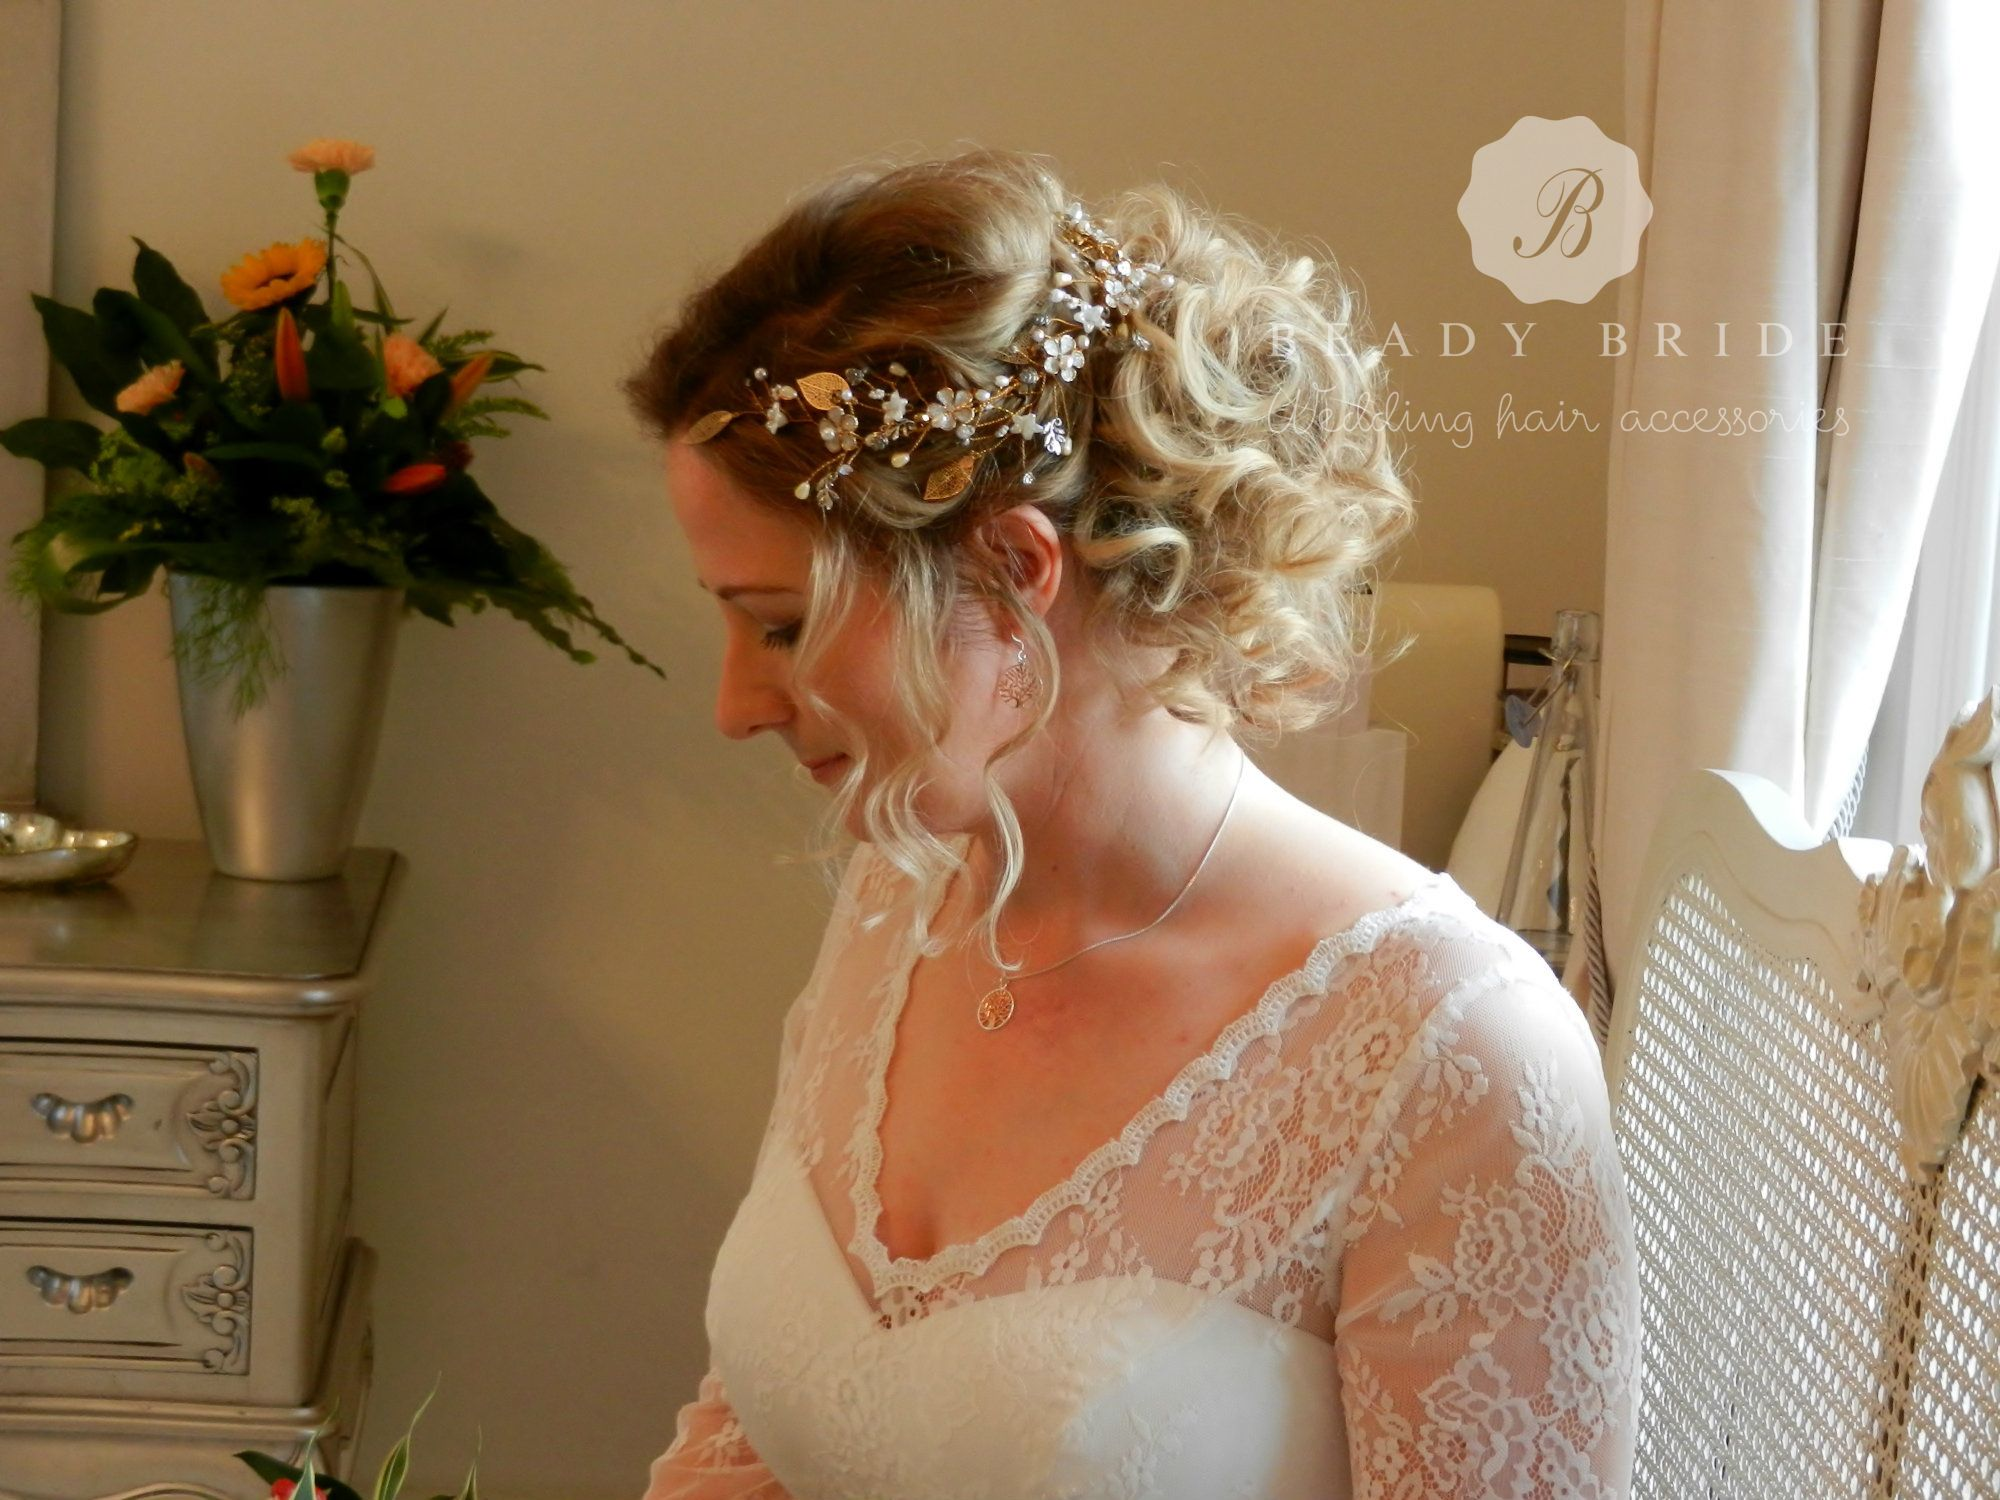 Wedding hair accessories gloucestershire - Bridal Hair And Hair Accessory By Sheena At Www Beadybride Com